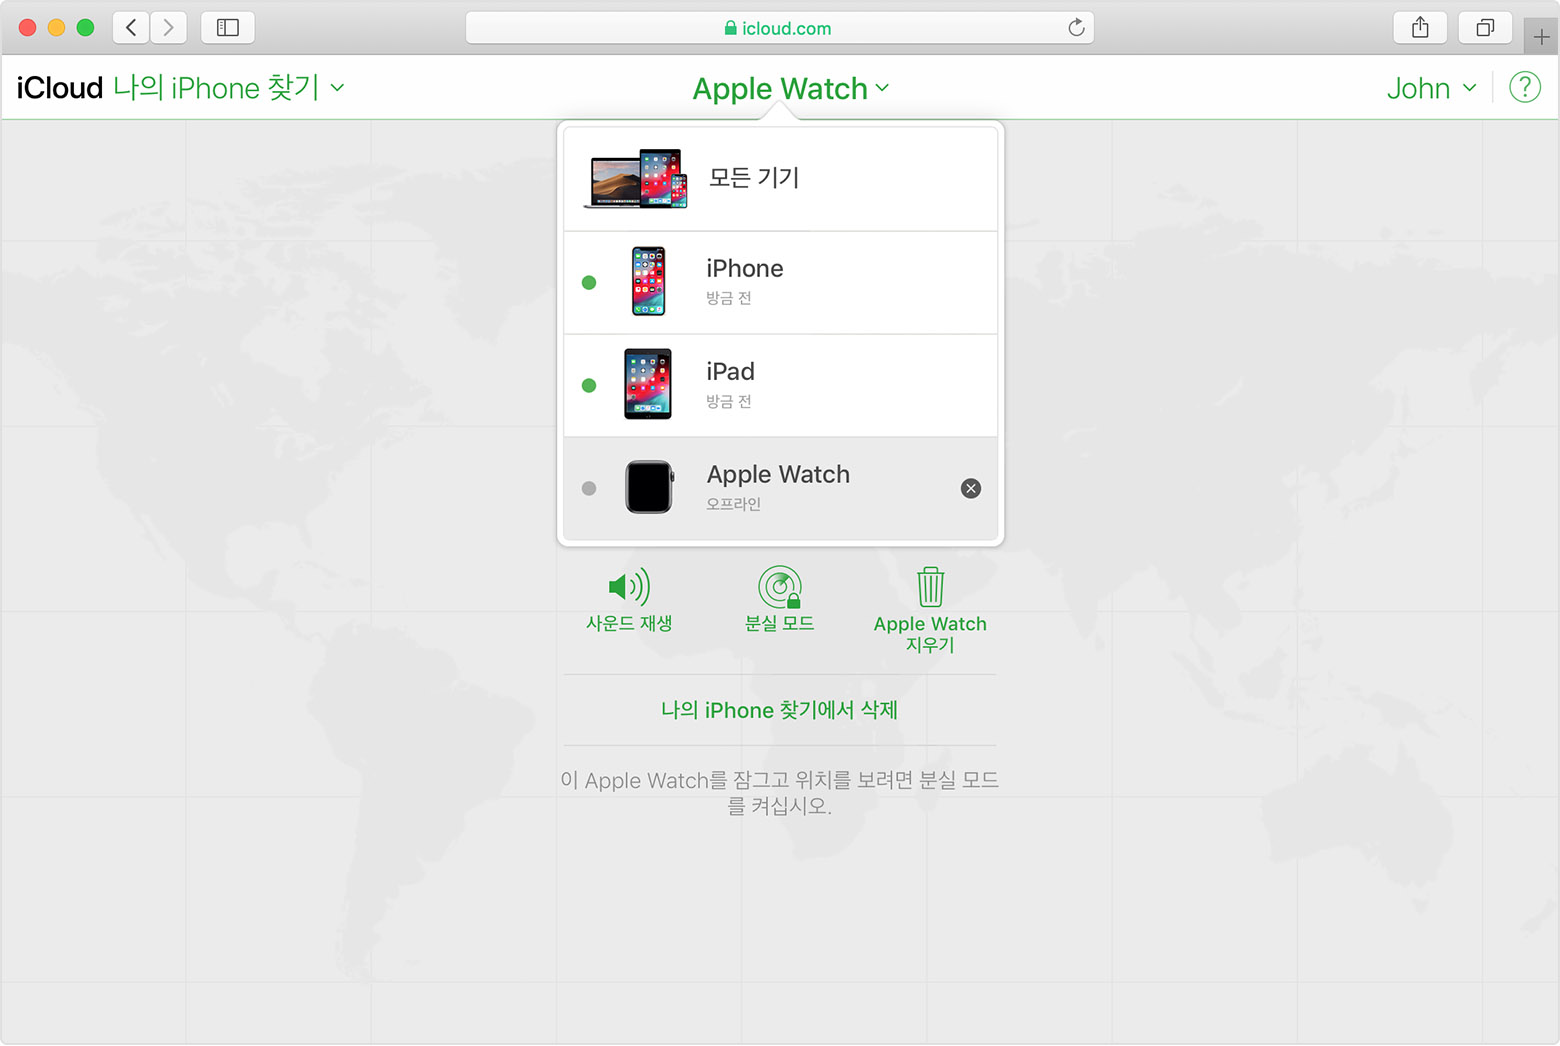 John의 Apple Watch가 표시된 iCloud 나의 iPhone 찾기